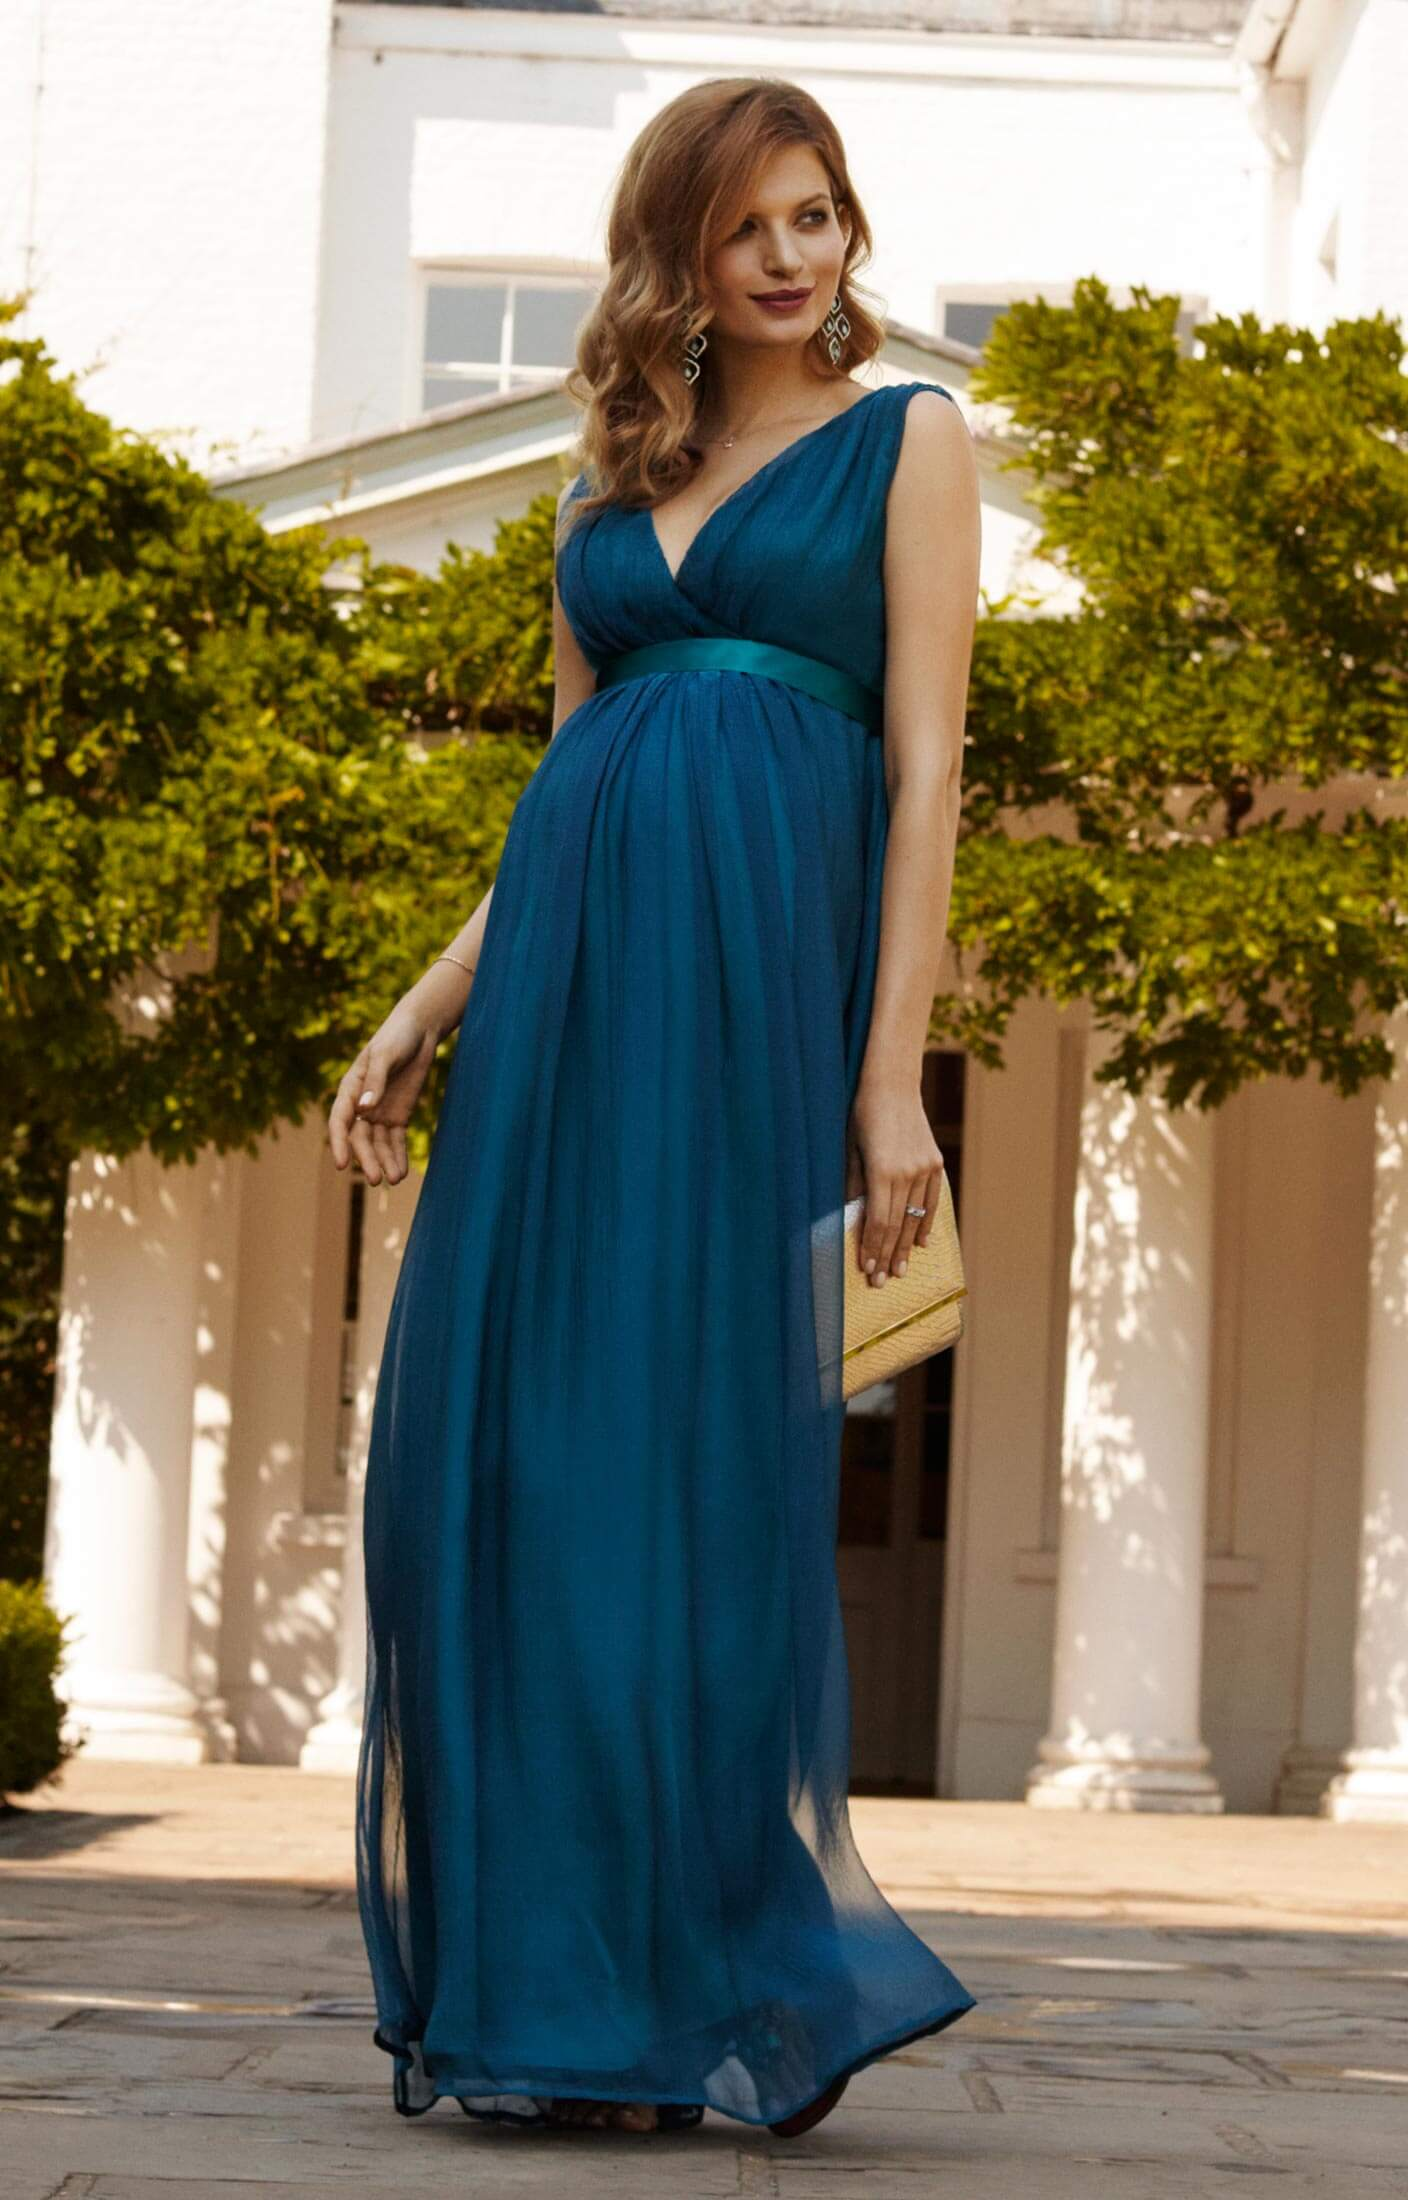 ava maternity gown long aegean blue maternity wedding dresses evening wear and party clothes. Black Bedroom Furniture Sets. Home Design Ideas